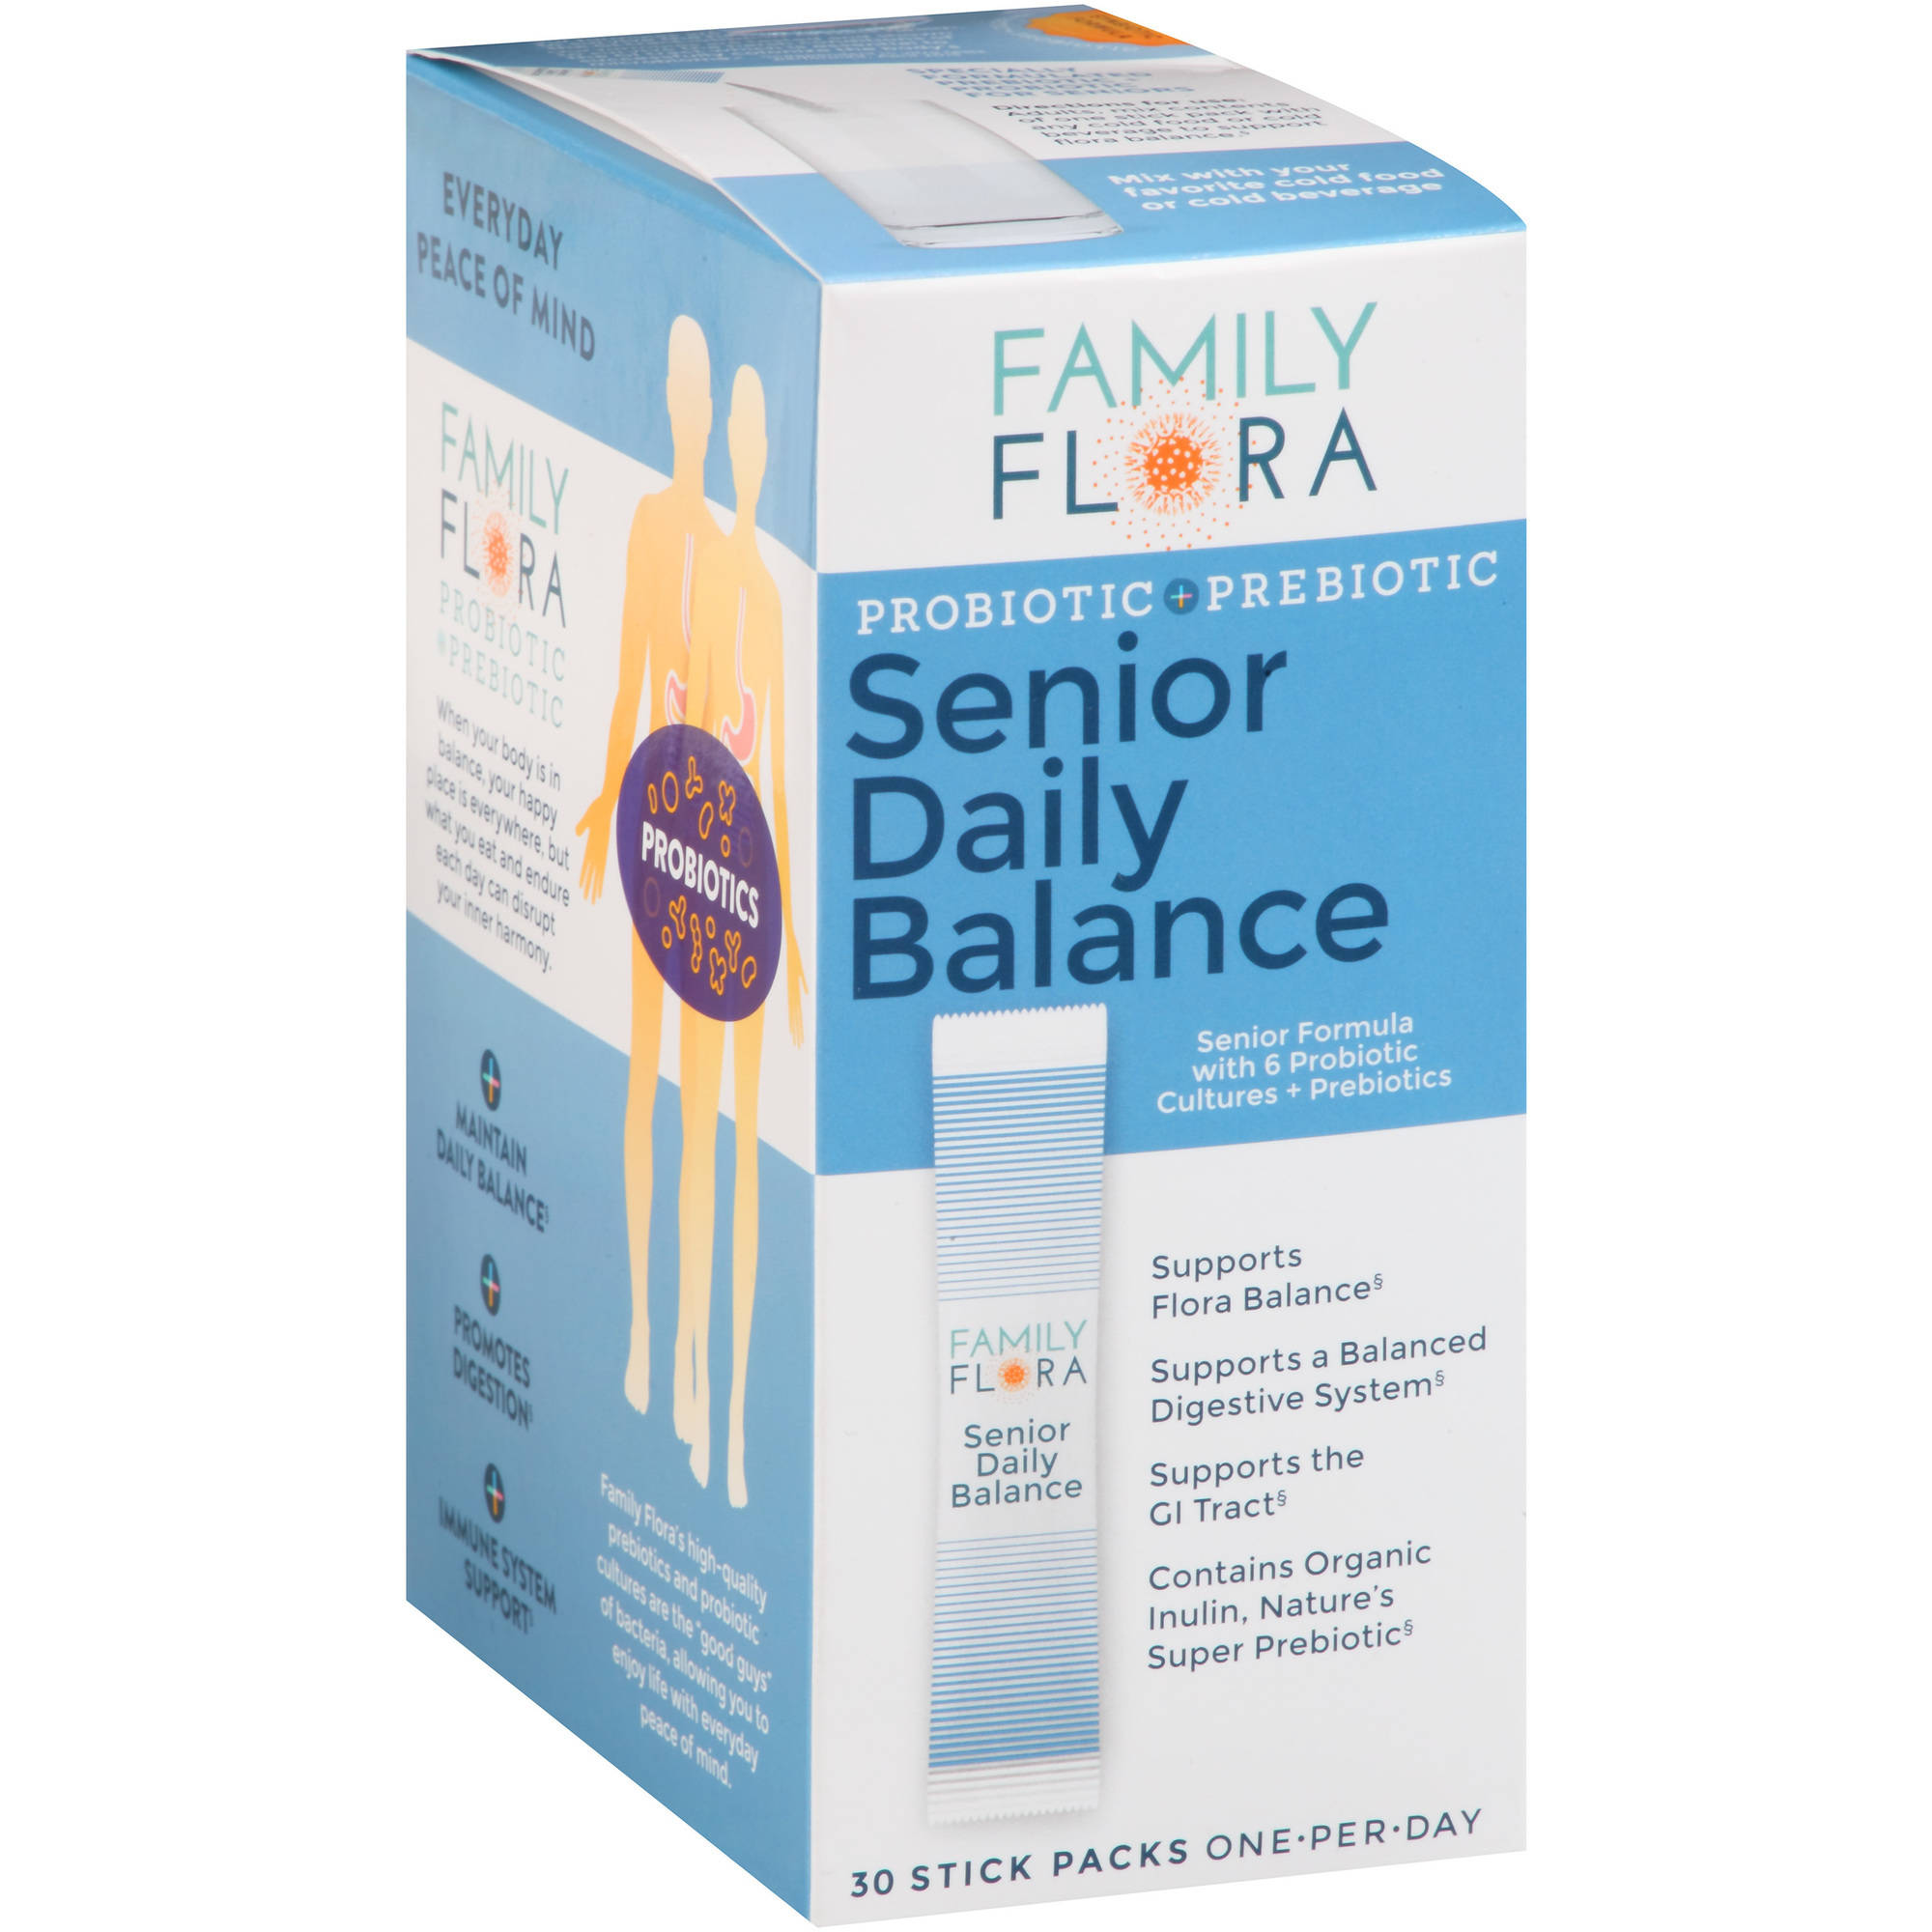 Family Flora Probiotic + Prebiotic Senior Daily Balance Dietary Supplement Stick Packs, 30 count